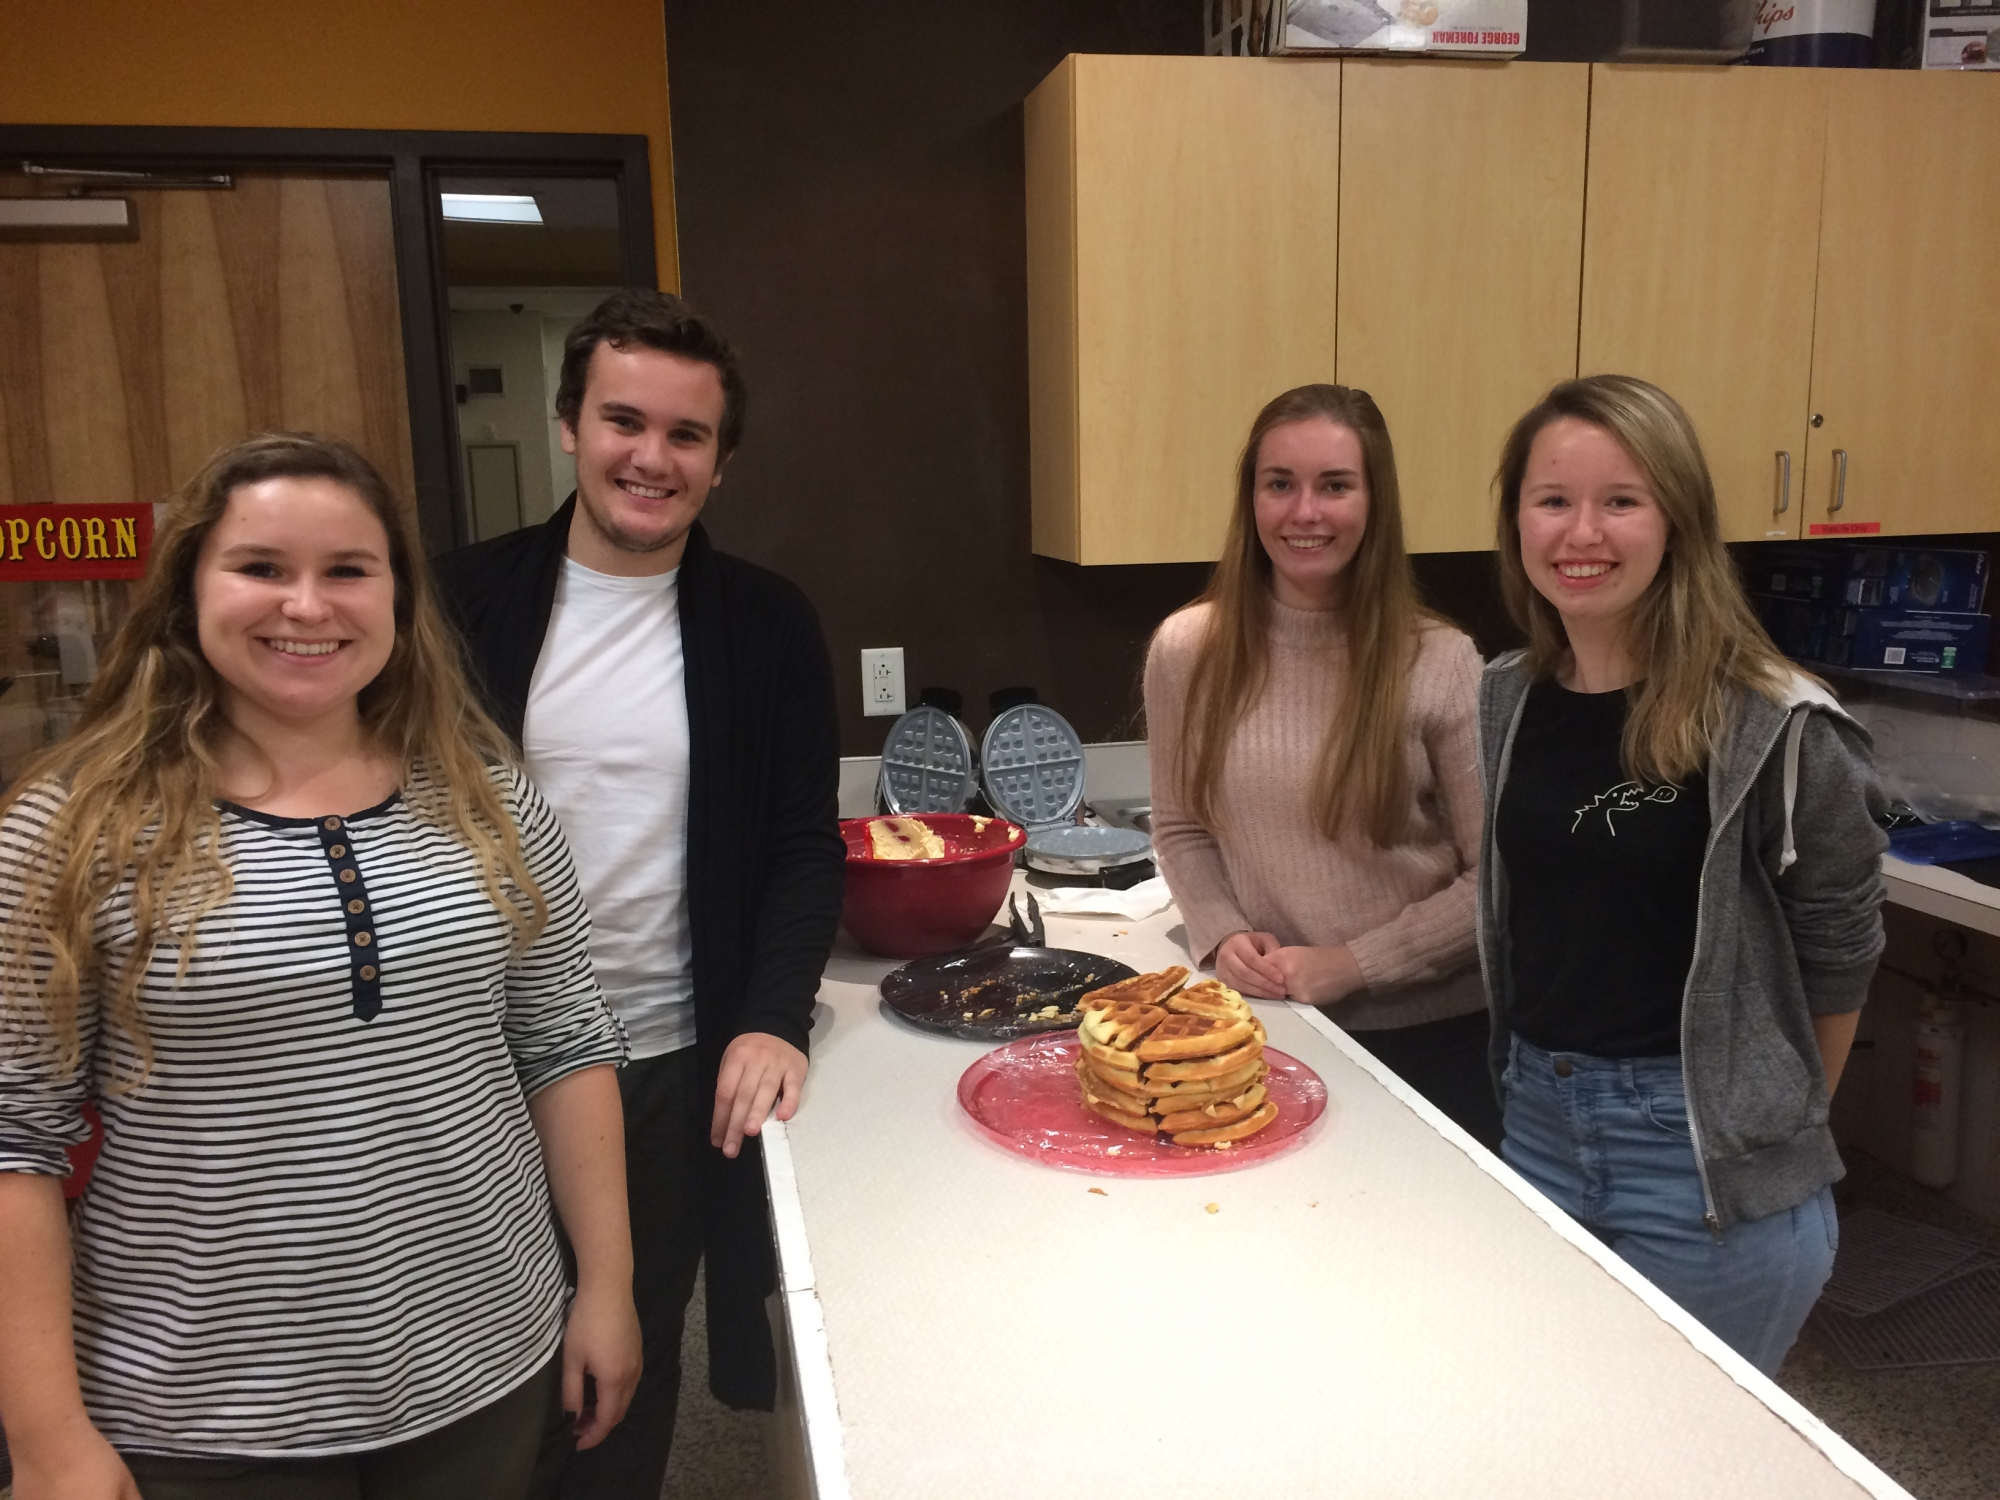 Belgian students Elise Grymonprez, Tijs Toulouse, Eline Vercaemer, Tessa Gesquire prepare delicious waffles based on a recipe from their home country.